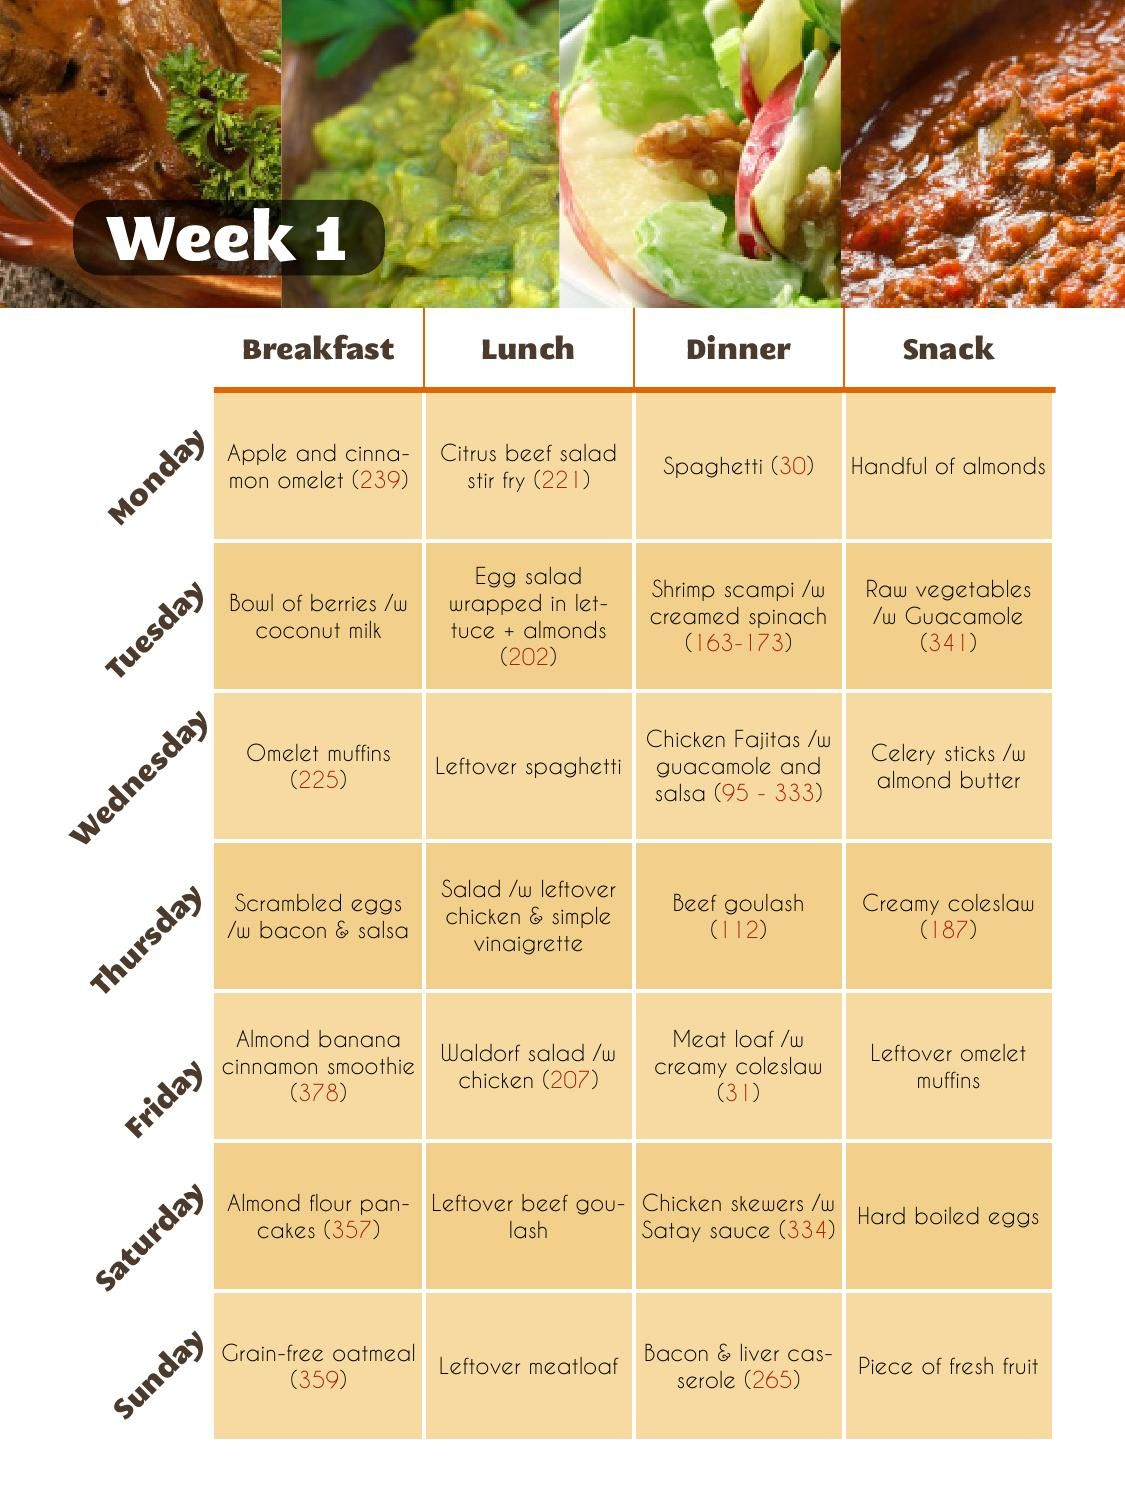 Whats the fastest weight loss diet